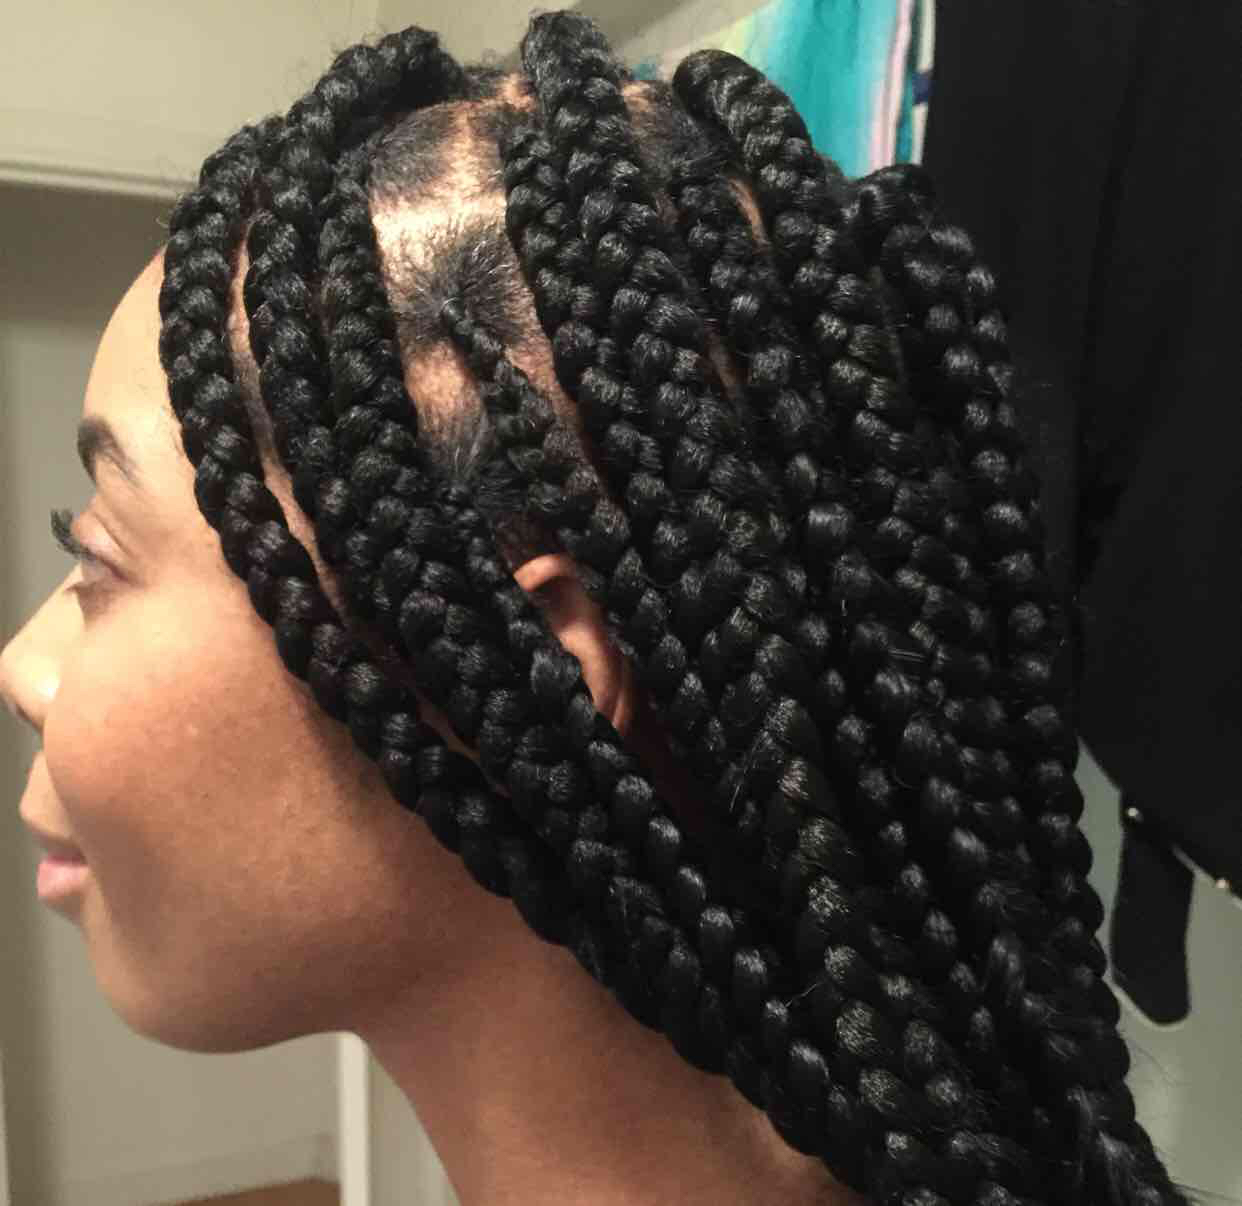 salon de coiffure afro tresse tresses box braids crochet braids vanilles tissages paris 75 77 78 91 92 93 94 95 XKFZTUNU